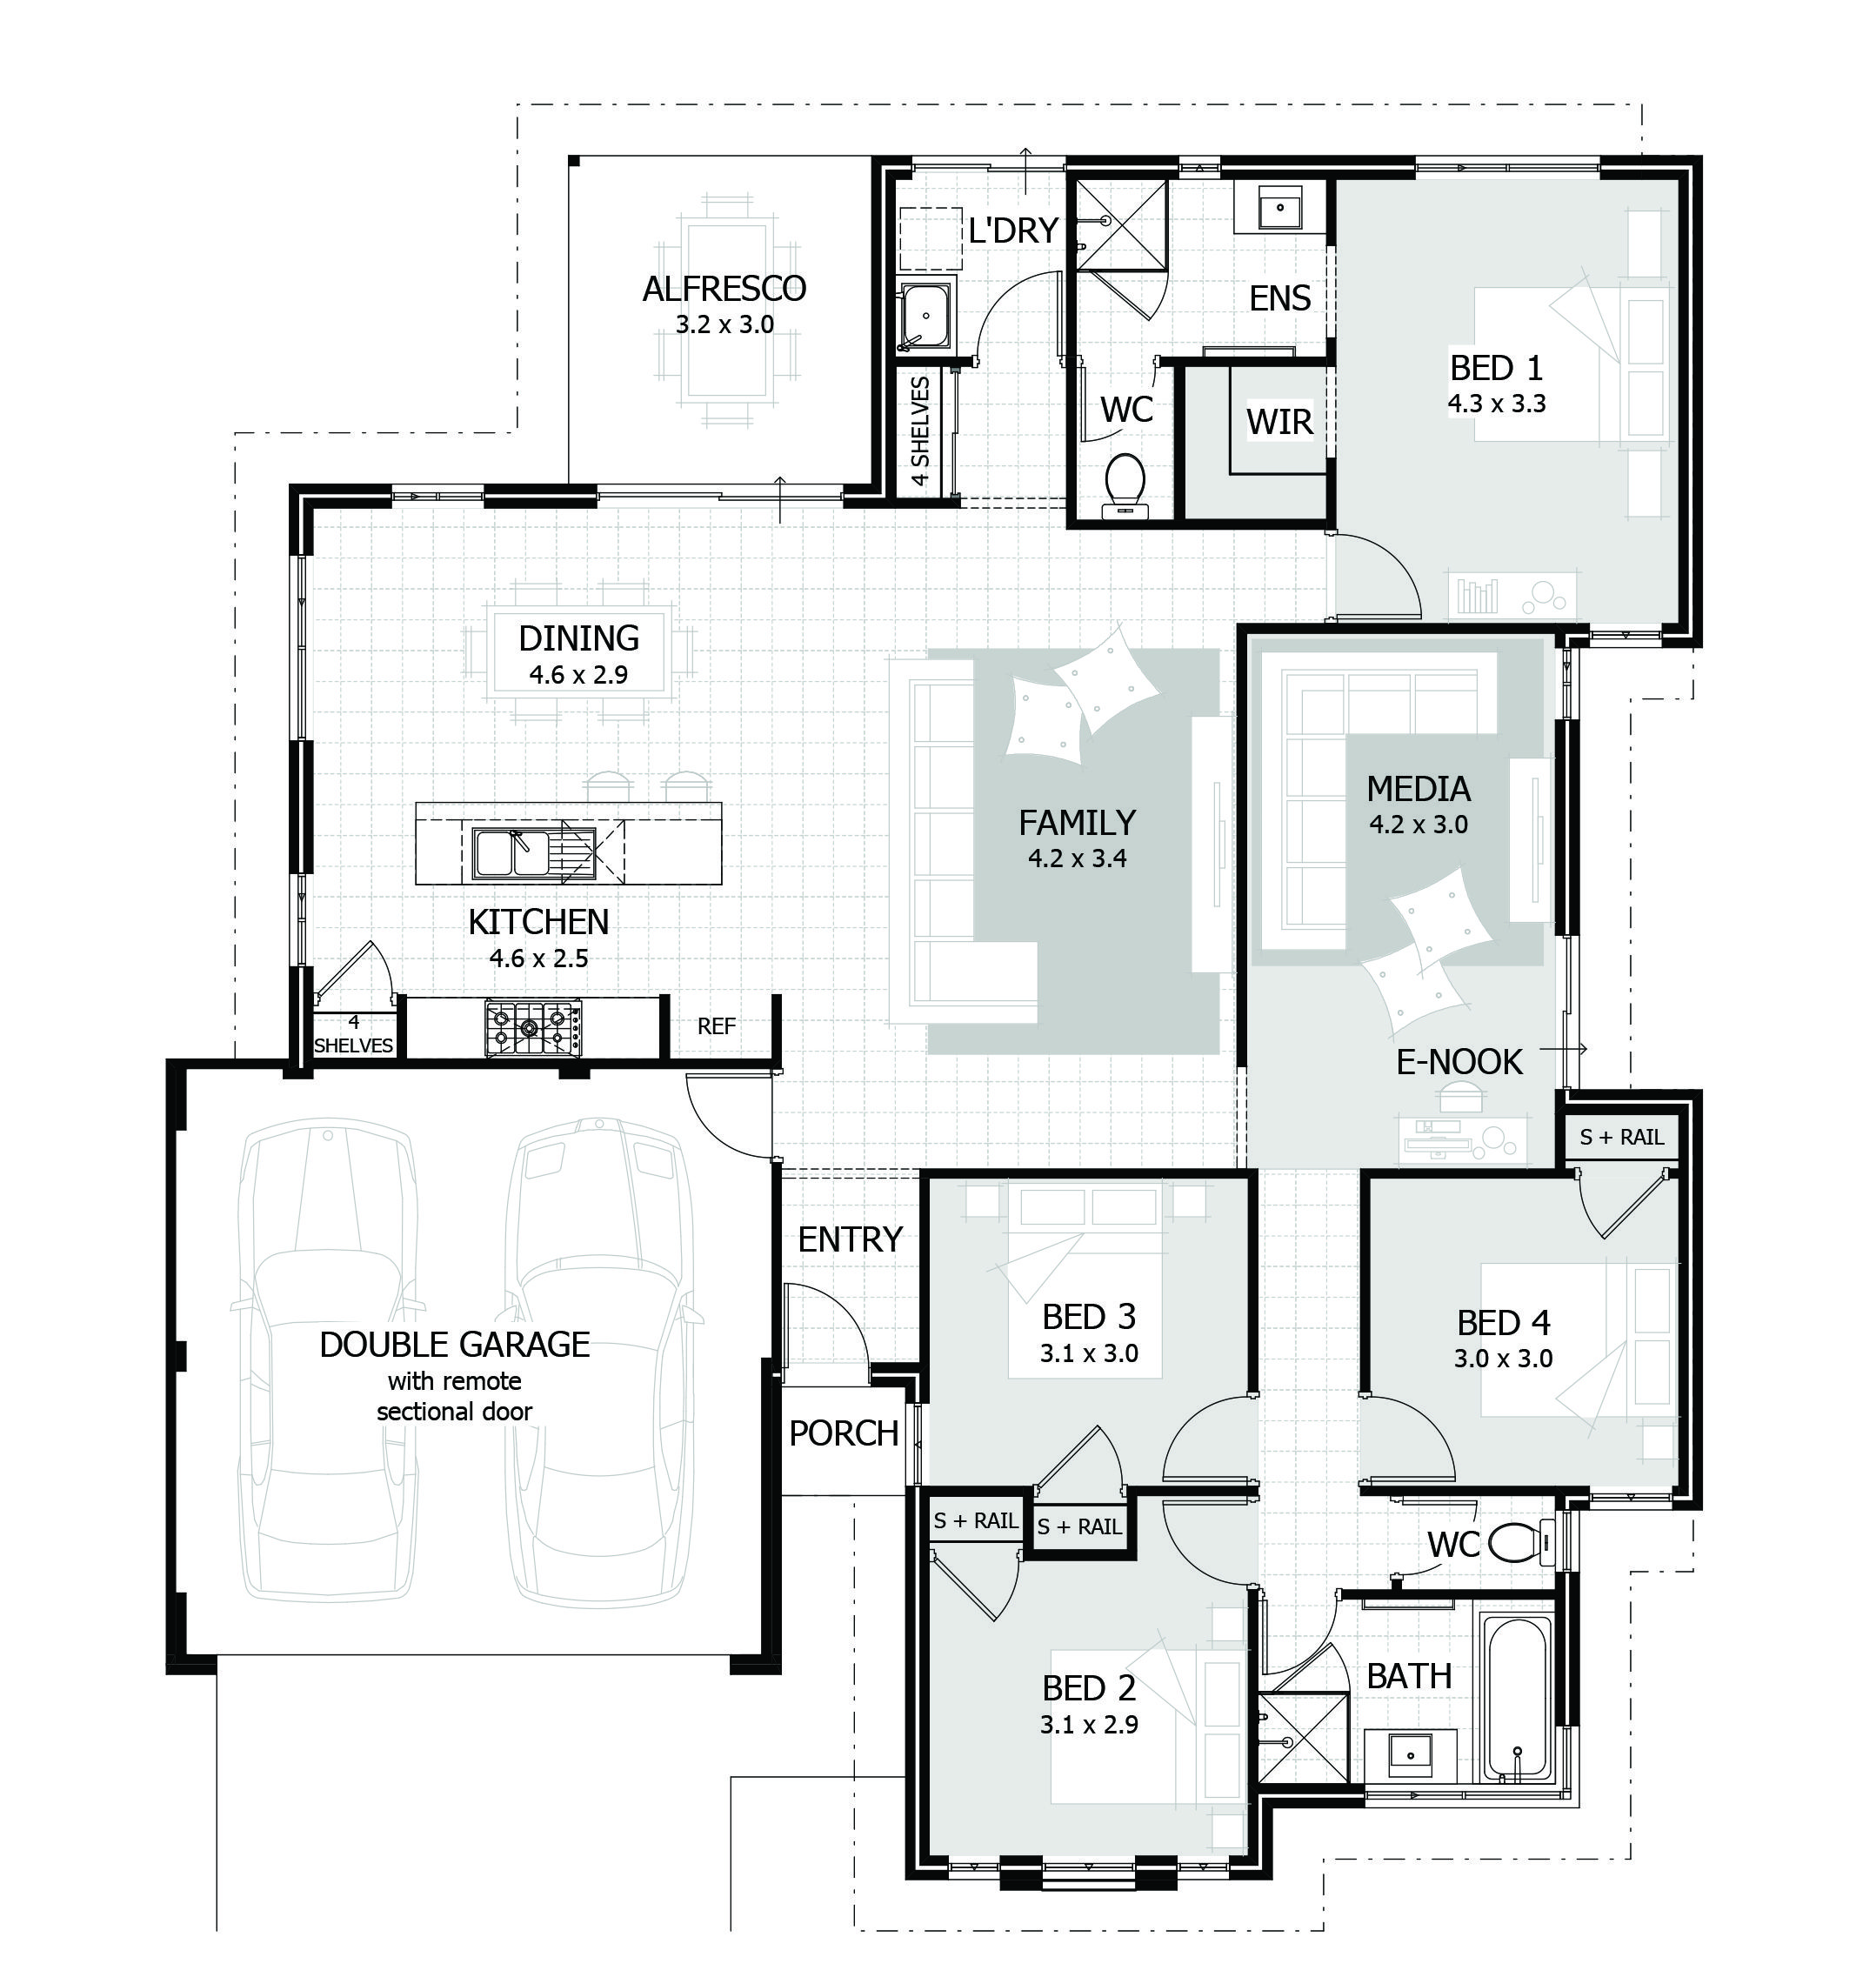 New home designs perth wa single storey house plans also rh in pinterest